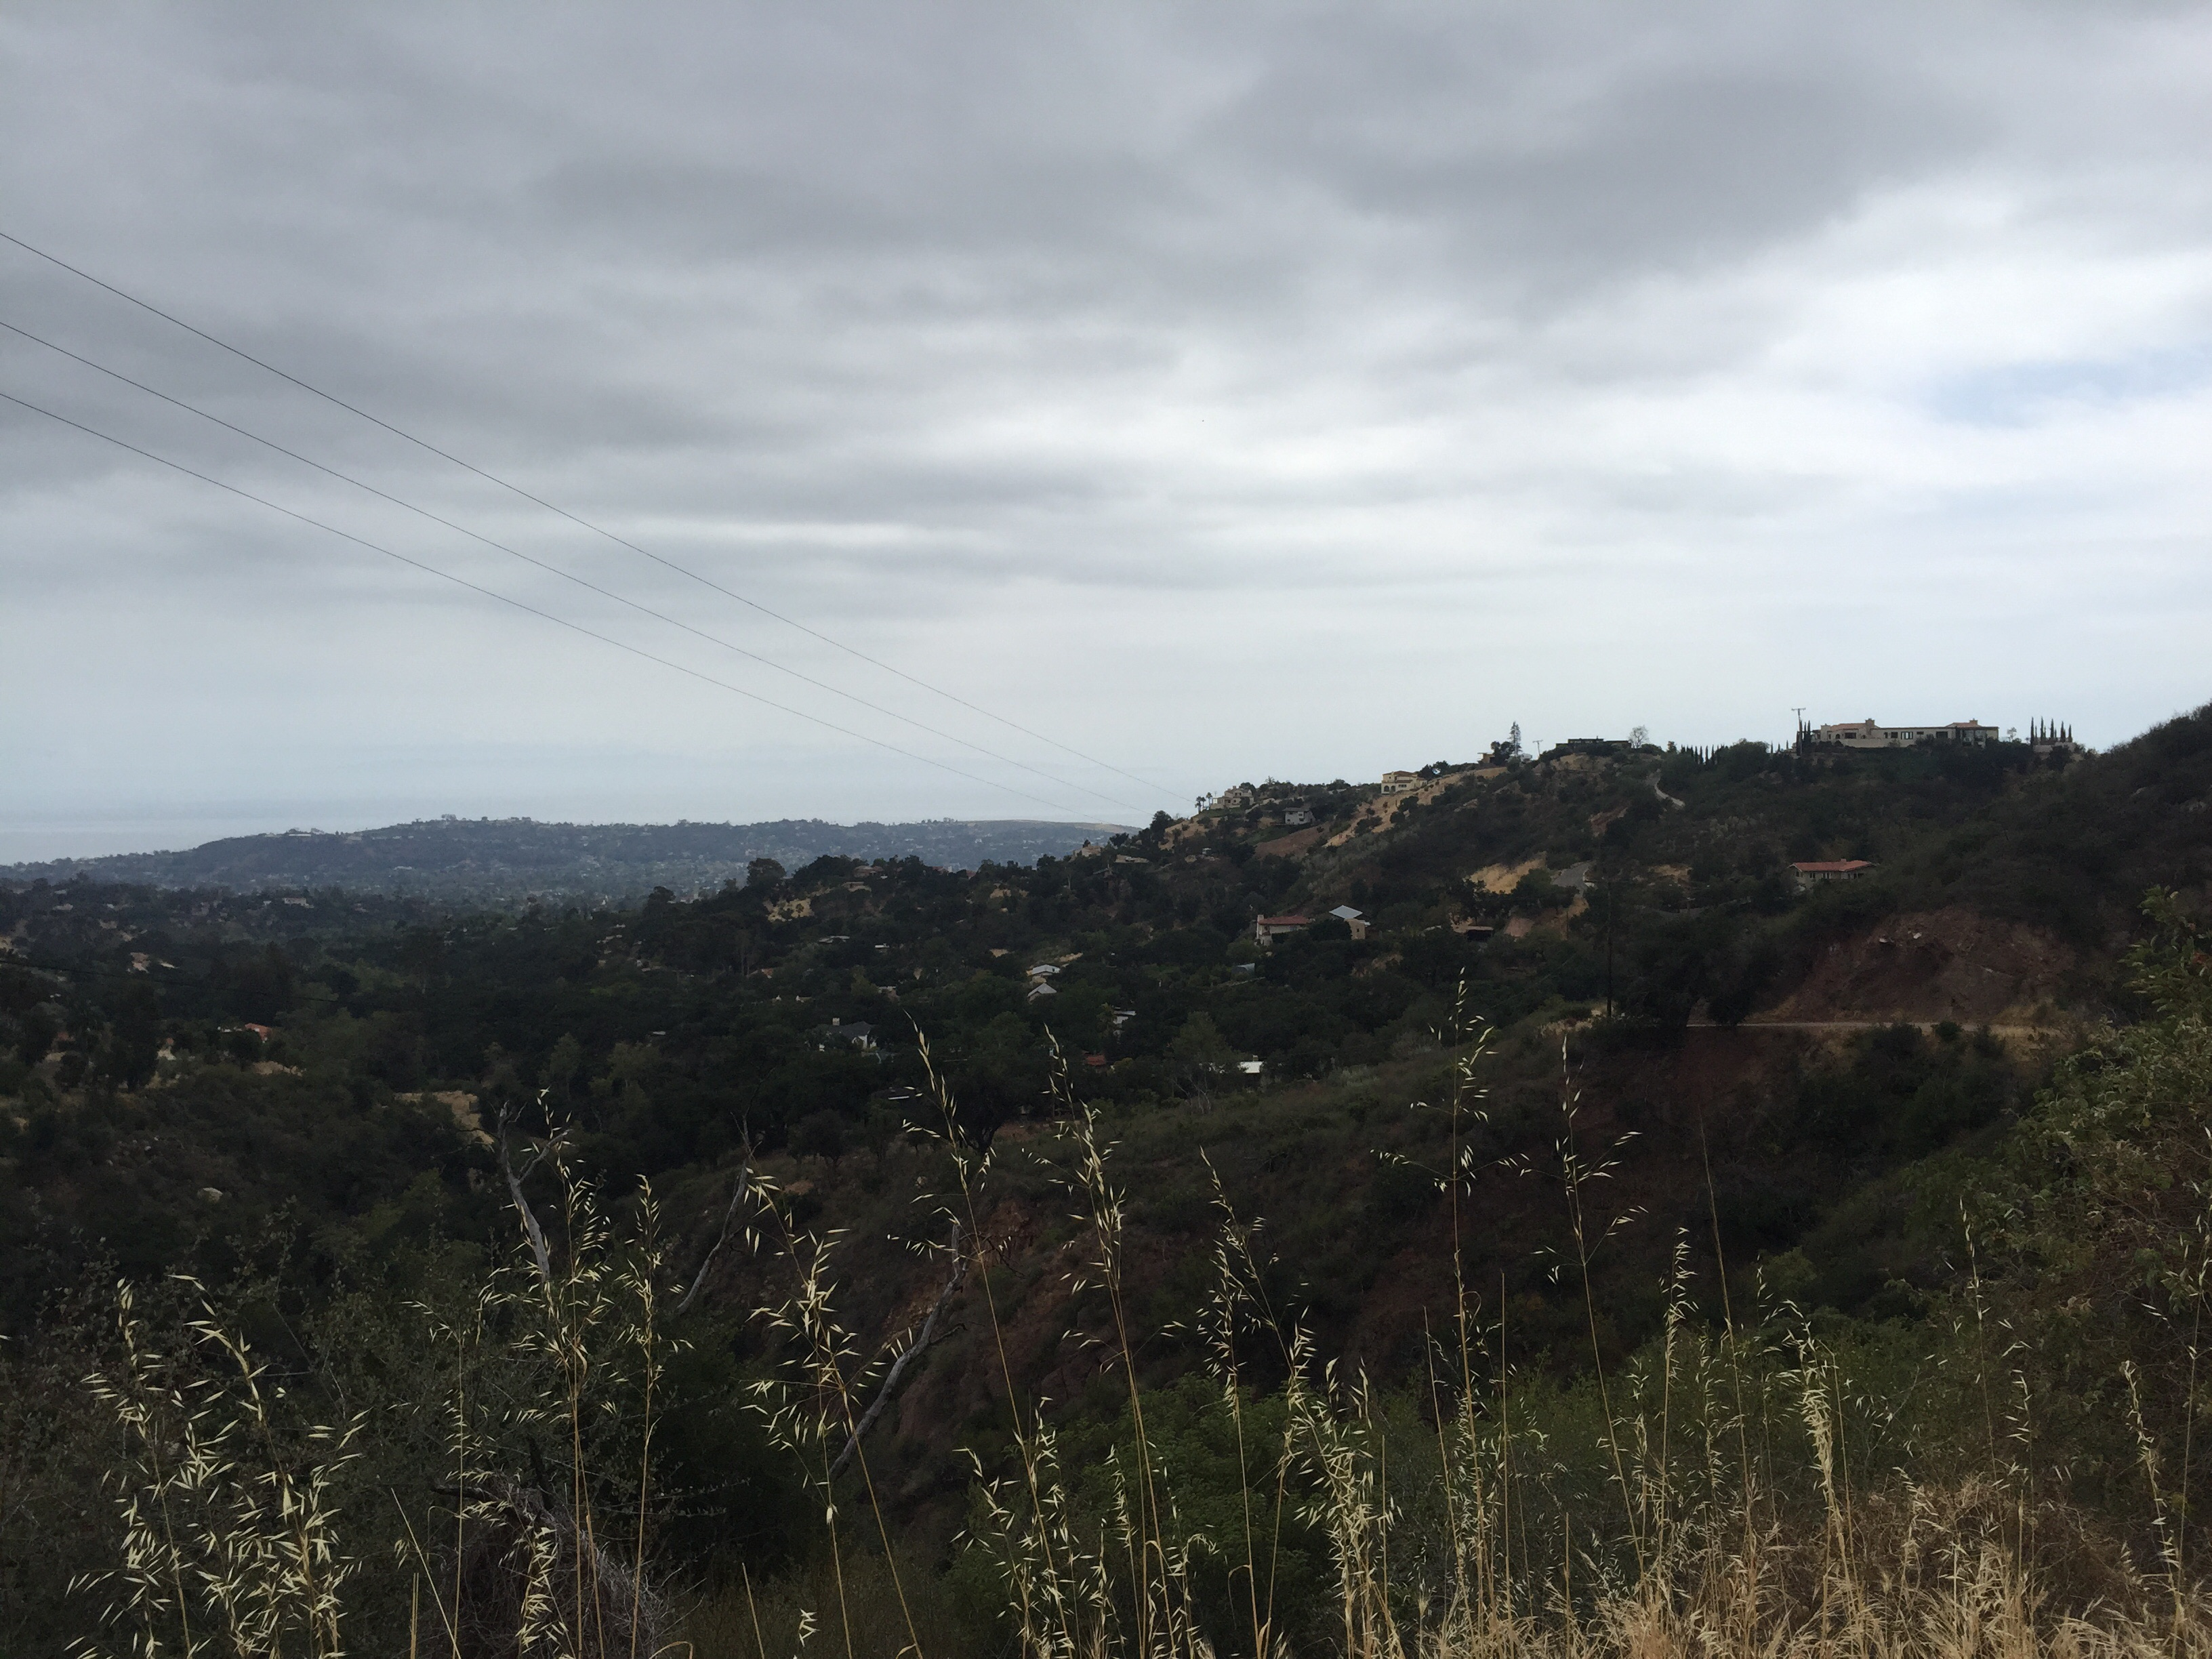 Rainy days and gray clouds calls for a Red Rocks hike. Here's a POV perspective from the top of the world in beautiful Santa Barbara. - Niklas Knoph